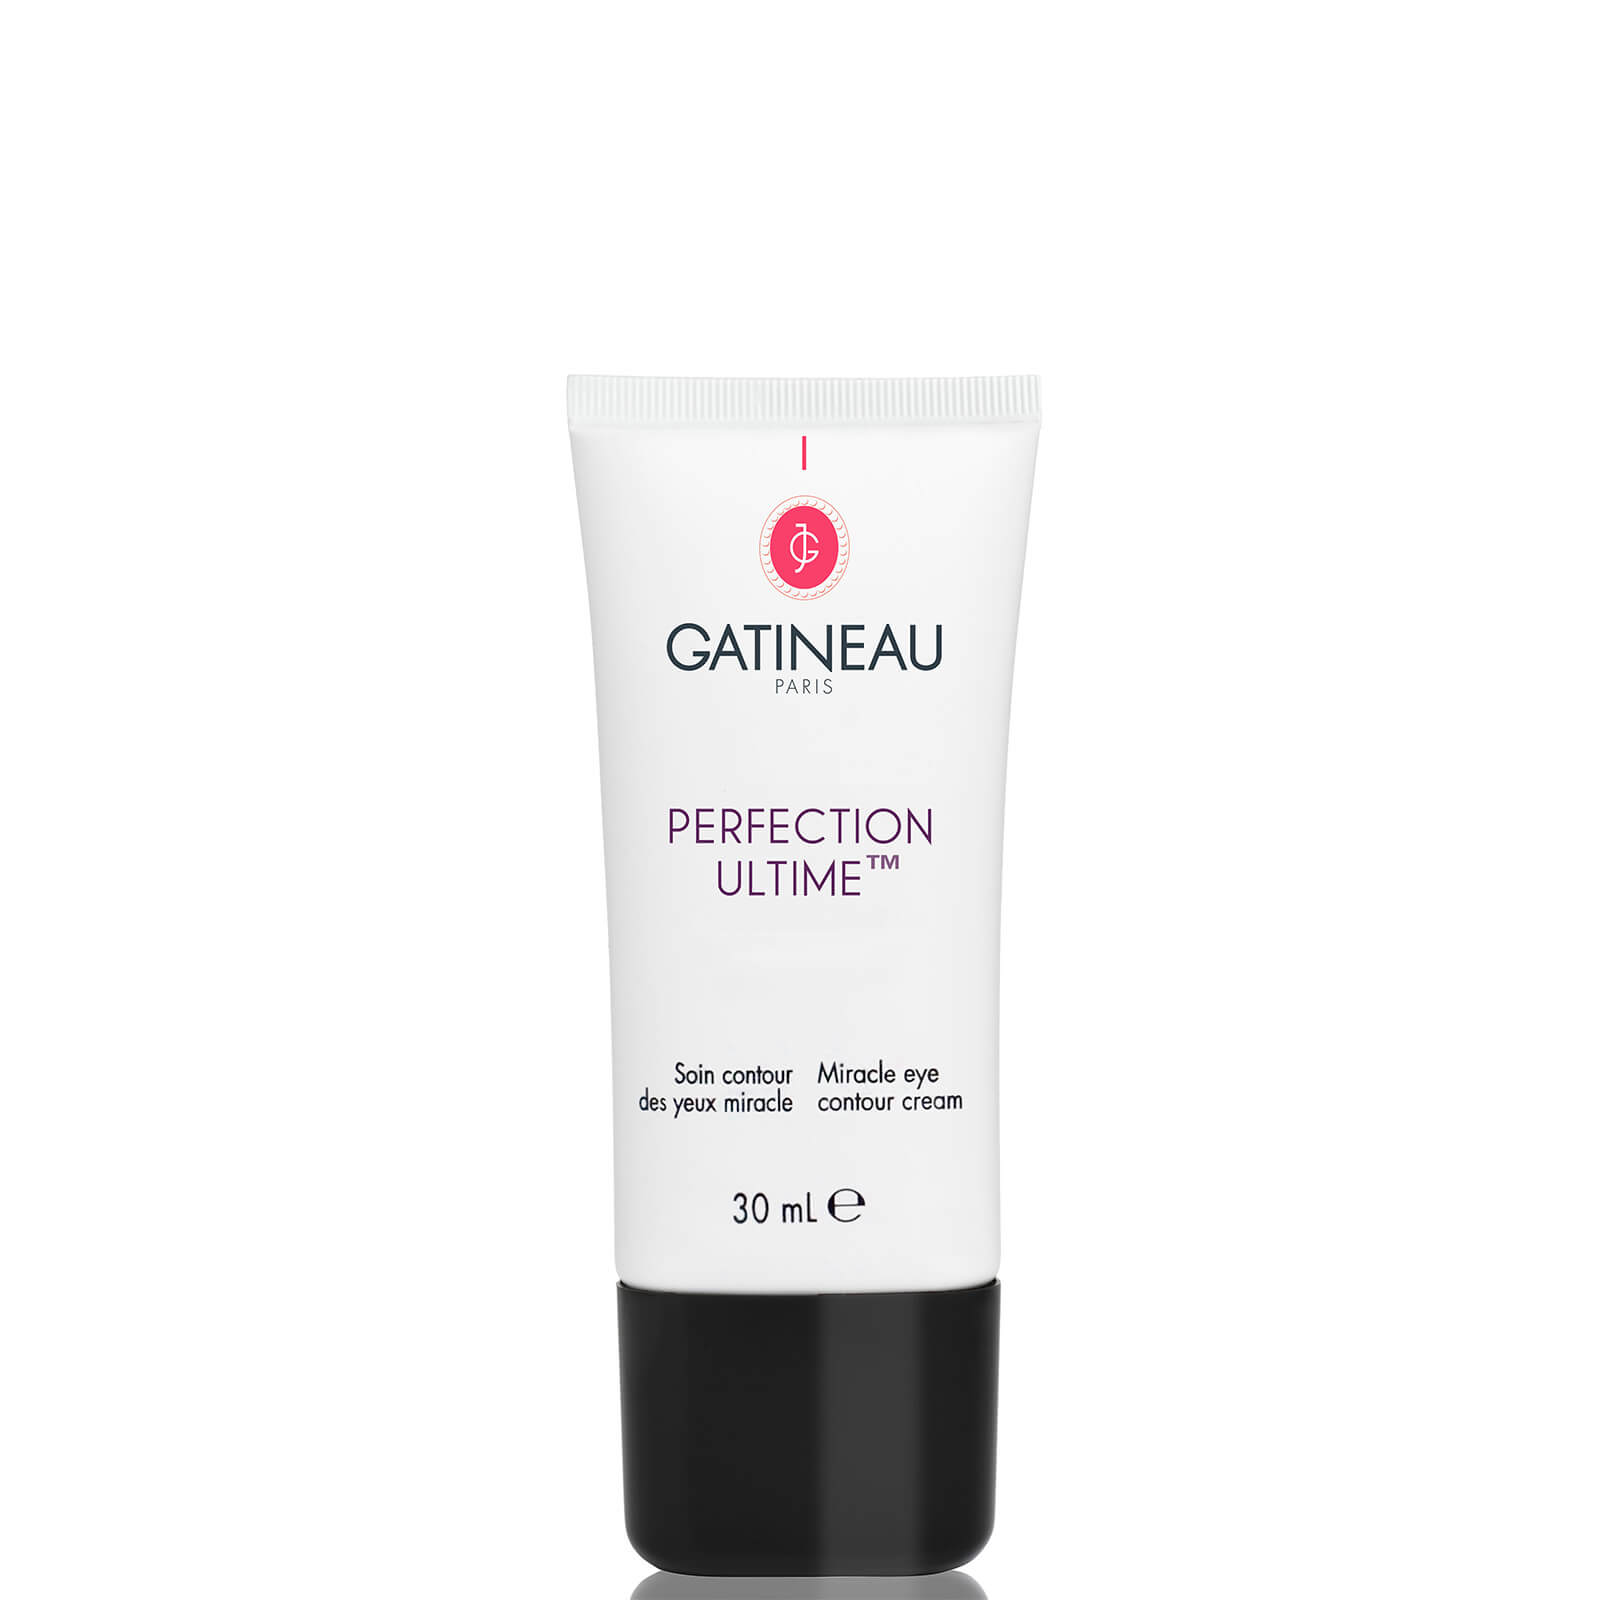 Gatineau Perfection Ultime Miracle Eye Contour Cream Supersize 30ml (Worth £76.00)